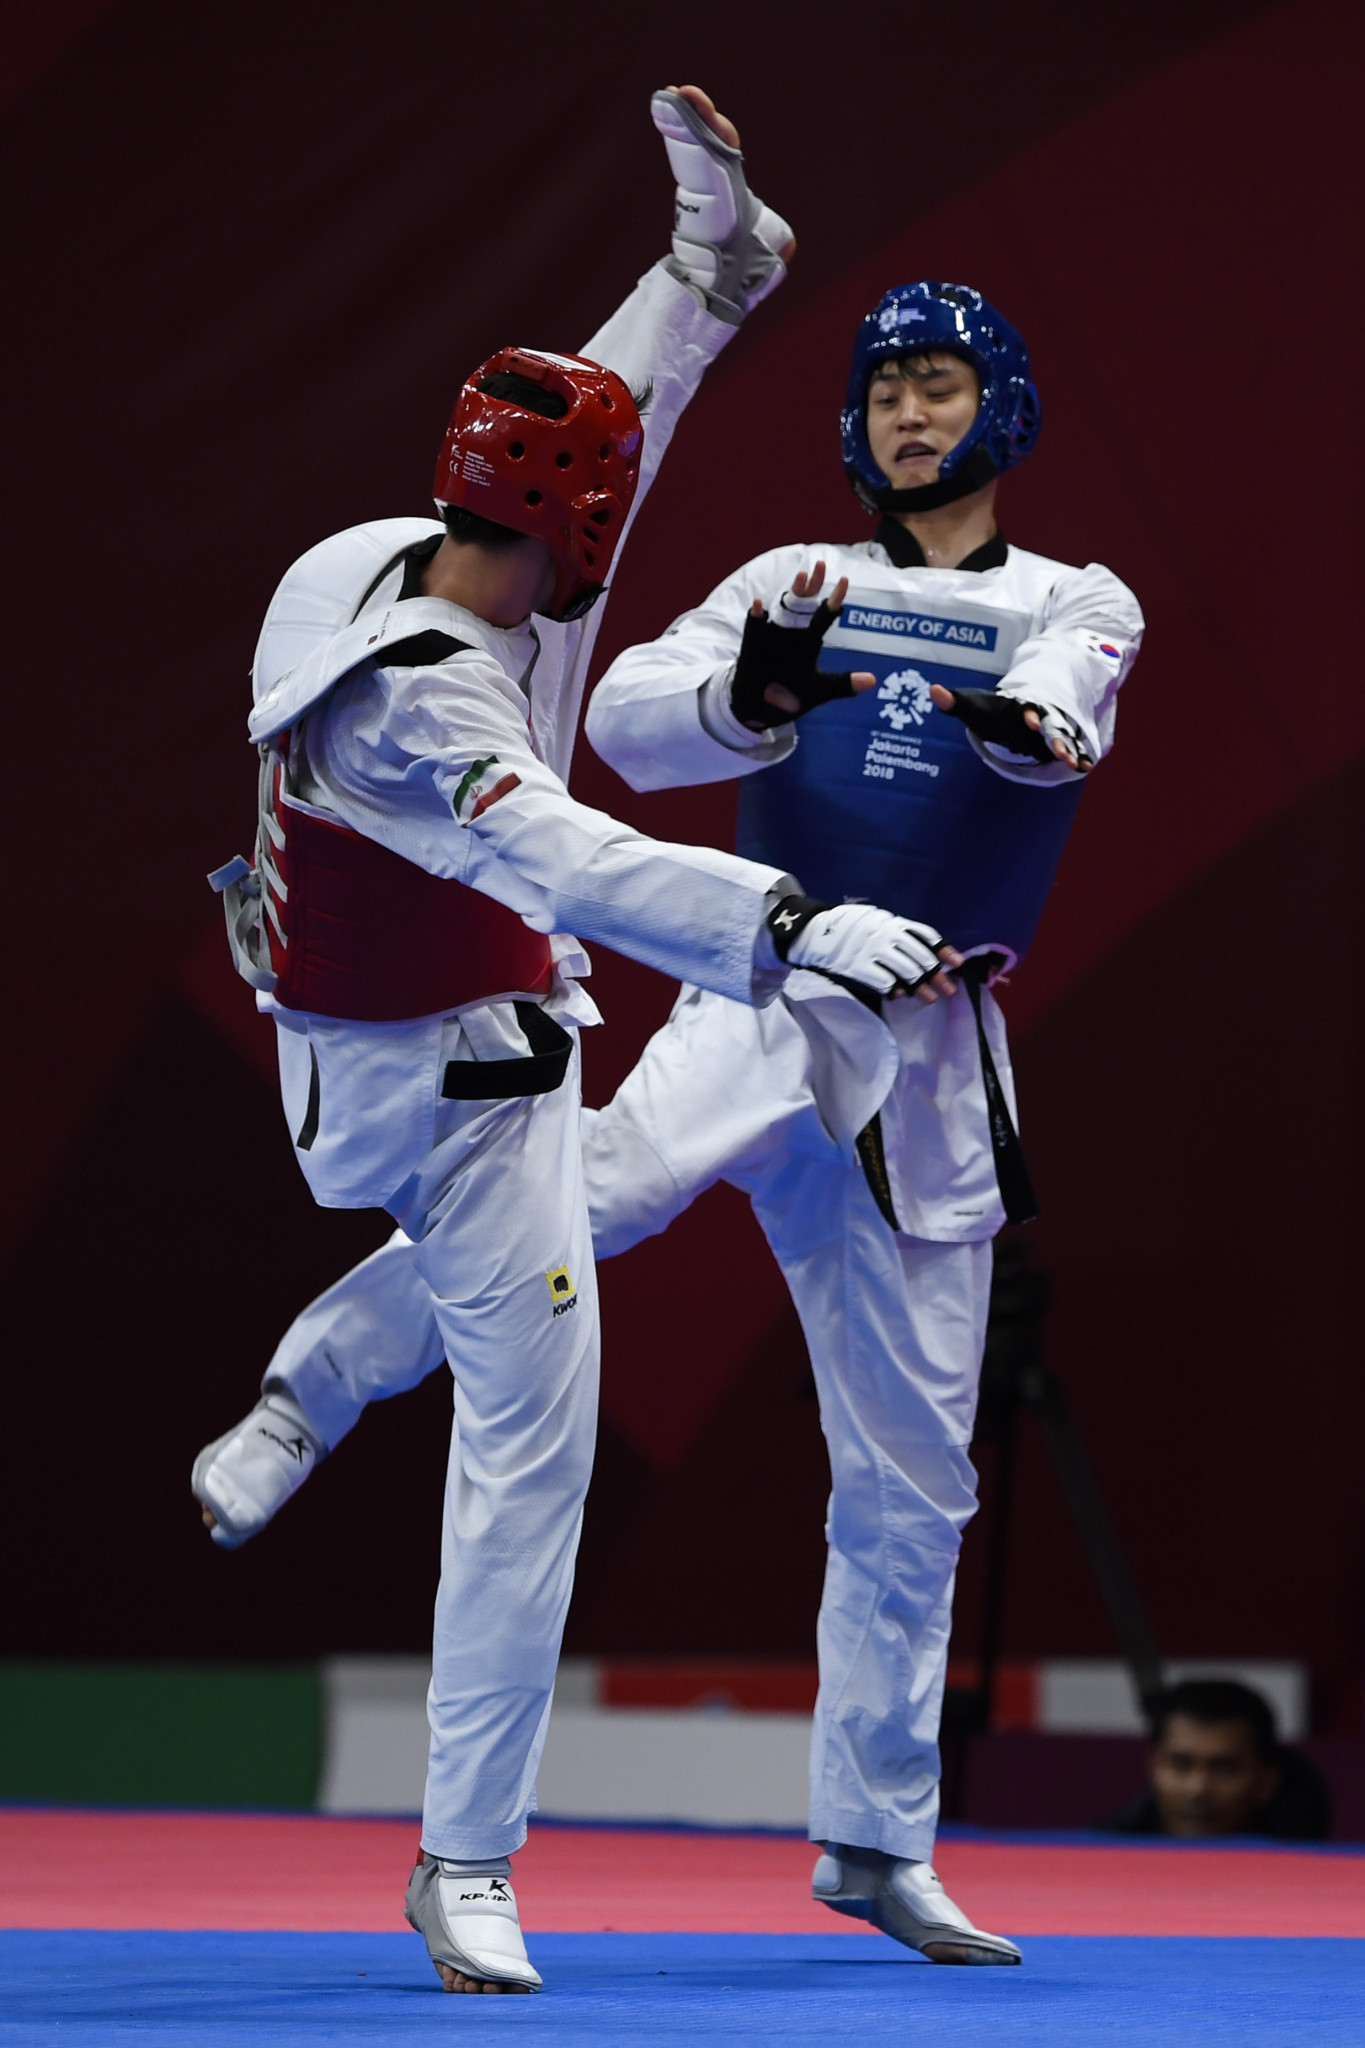 South Korea's Dae-Hoon Lee, a three-time Asian Games gold medallist, including at Jakarta-Palembang 2018, heads the field in the under-68kg category at the World Taekwondo Grand Prix in Manchester ©Getty Images